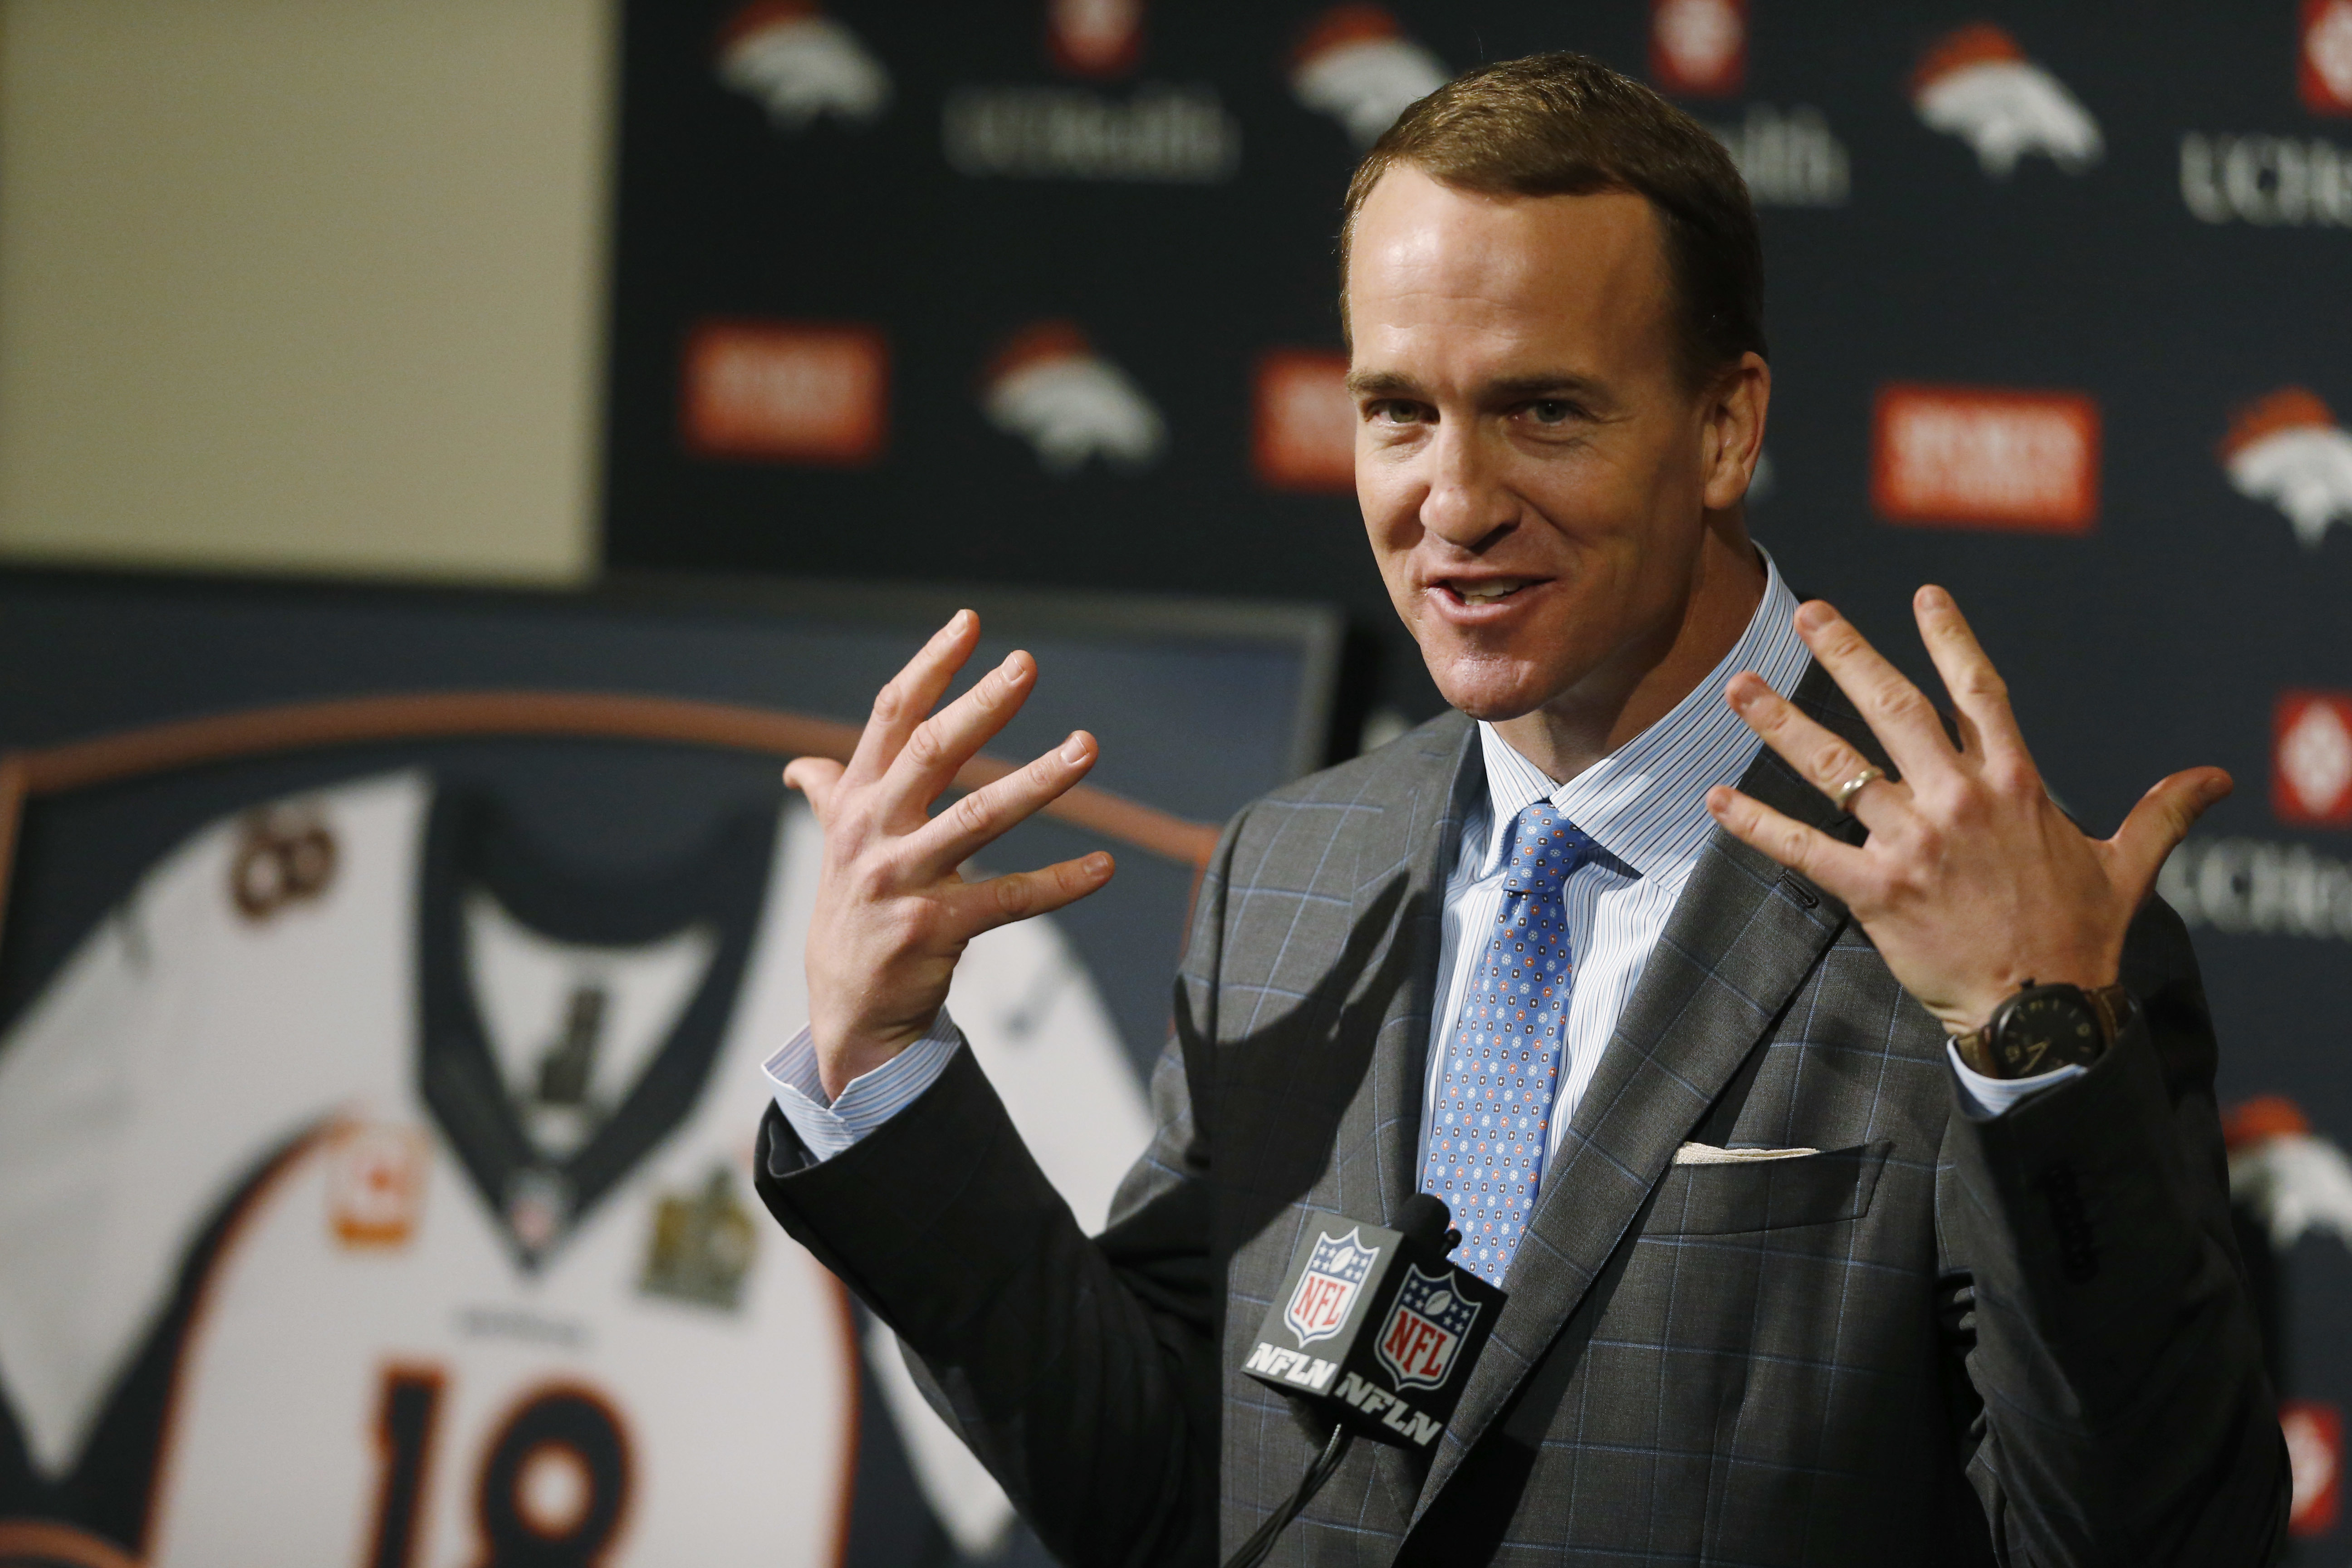 Denver Broncos quarterback Peyton Manning speaks during his retirement announcement at team headquarters Monday, March 7, 2016, in Englewood, Colo. Manning, who has been in the NFL for the past 18 years, is retiring after winning five MVP trophies and two